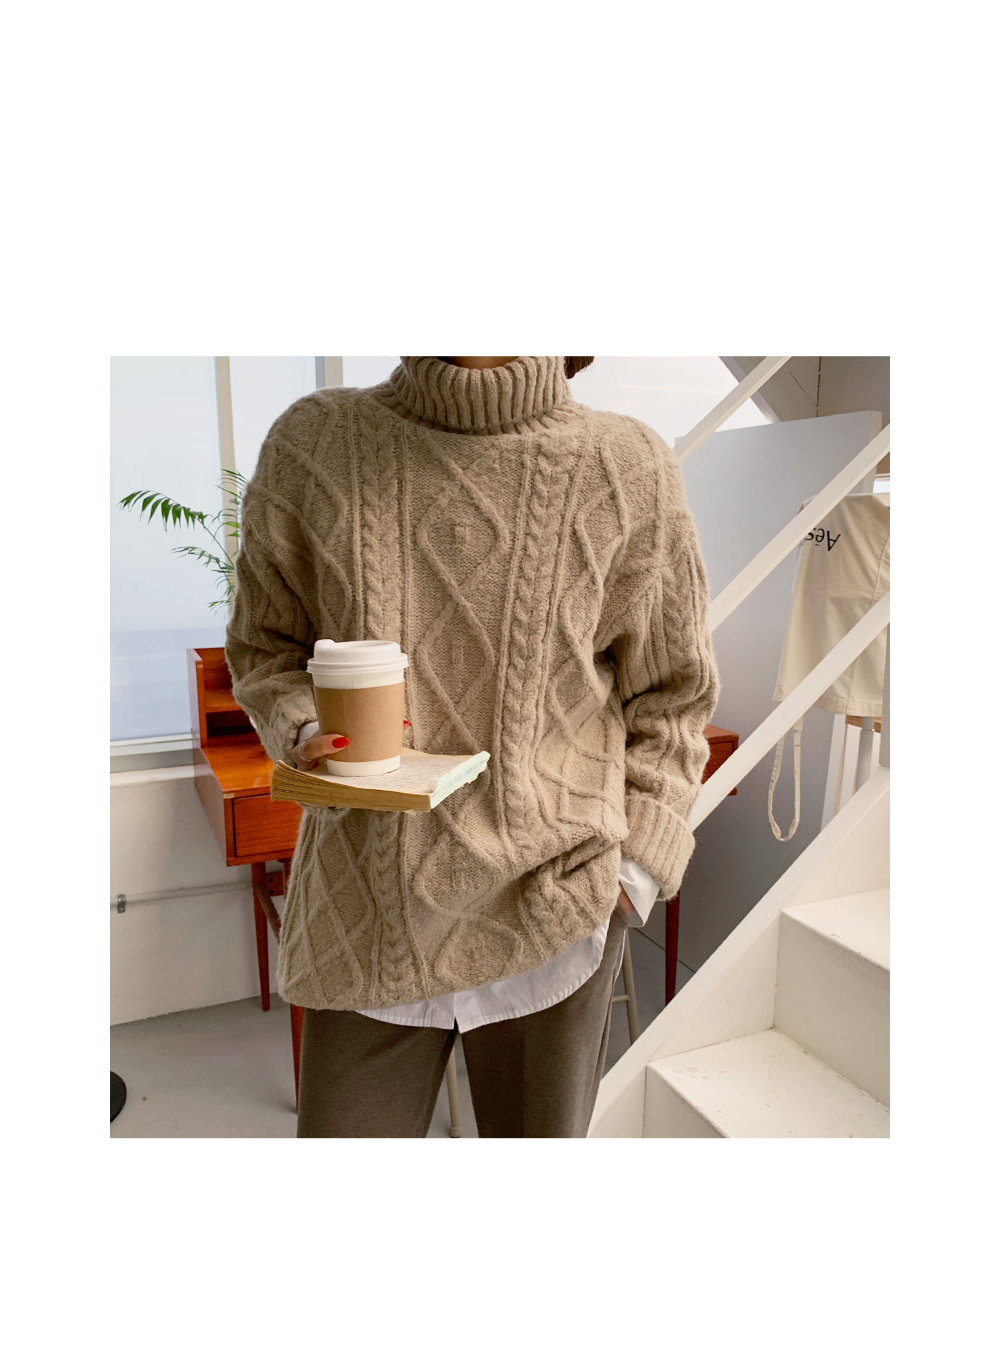 long sleeved tee oatmeal color image-S1L7